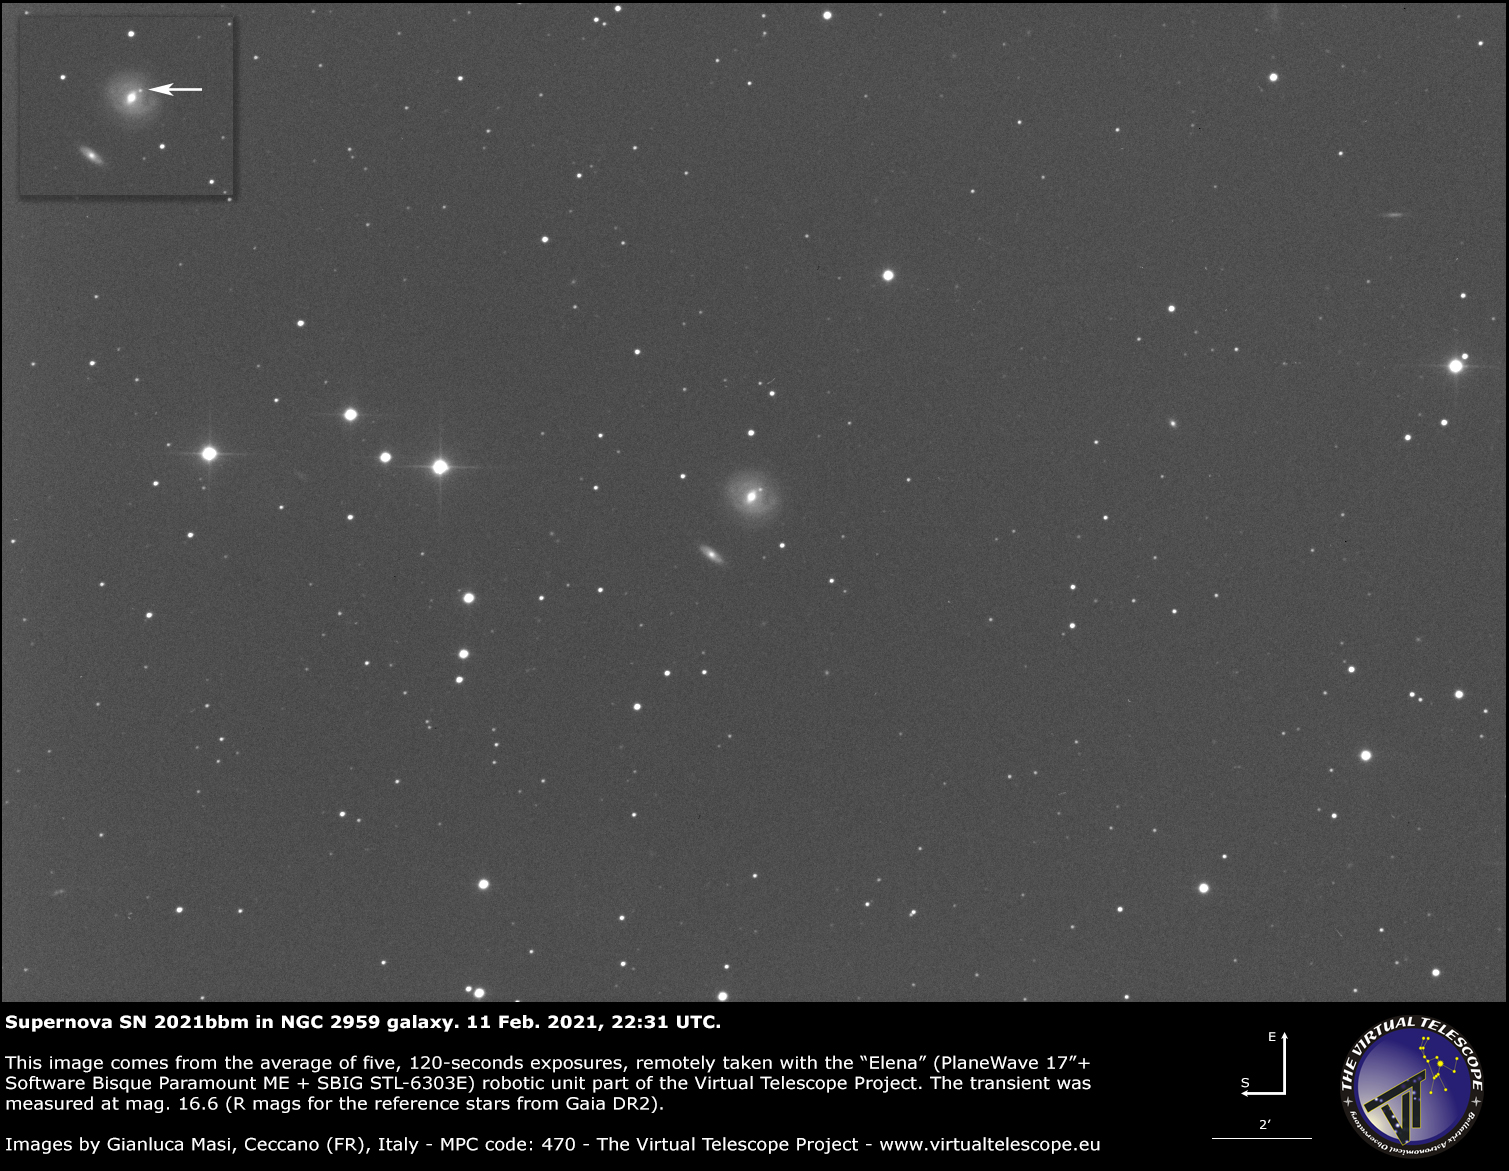 Supernova SN 2021bbm in NGC 2959 galaxy: 11 Feb. 2021.